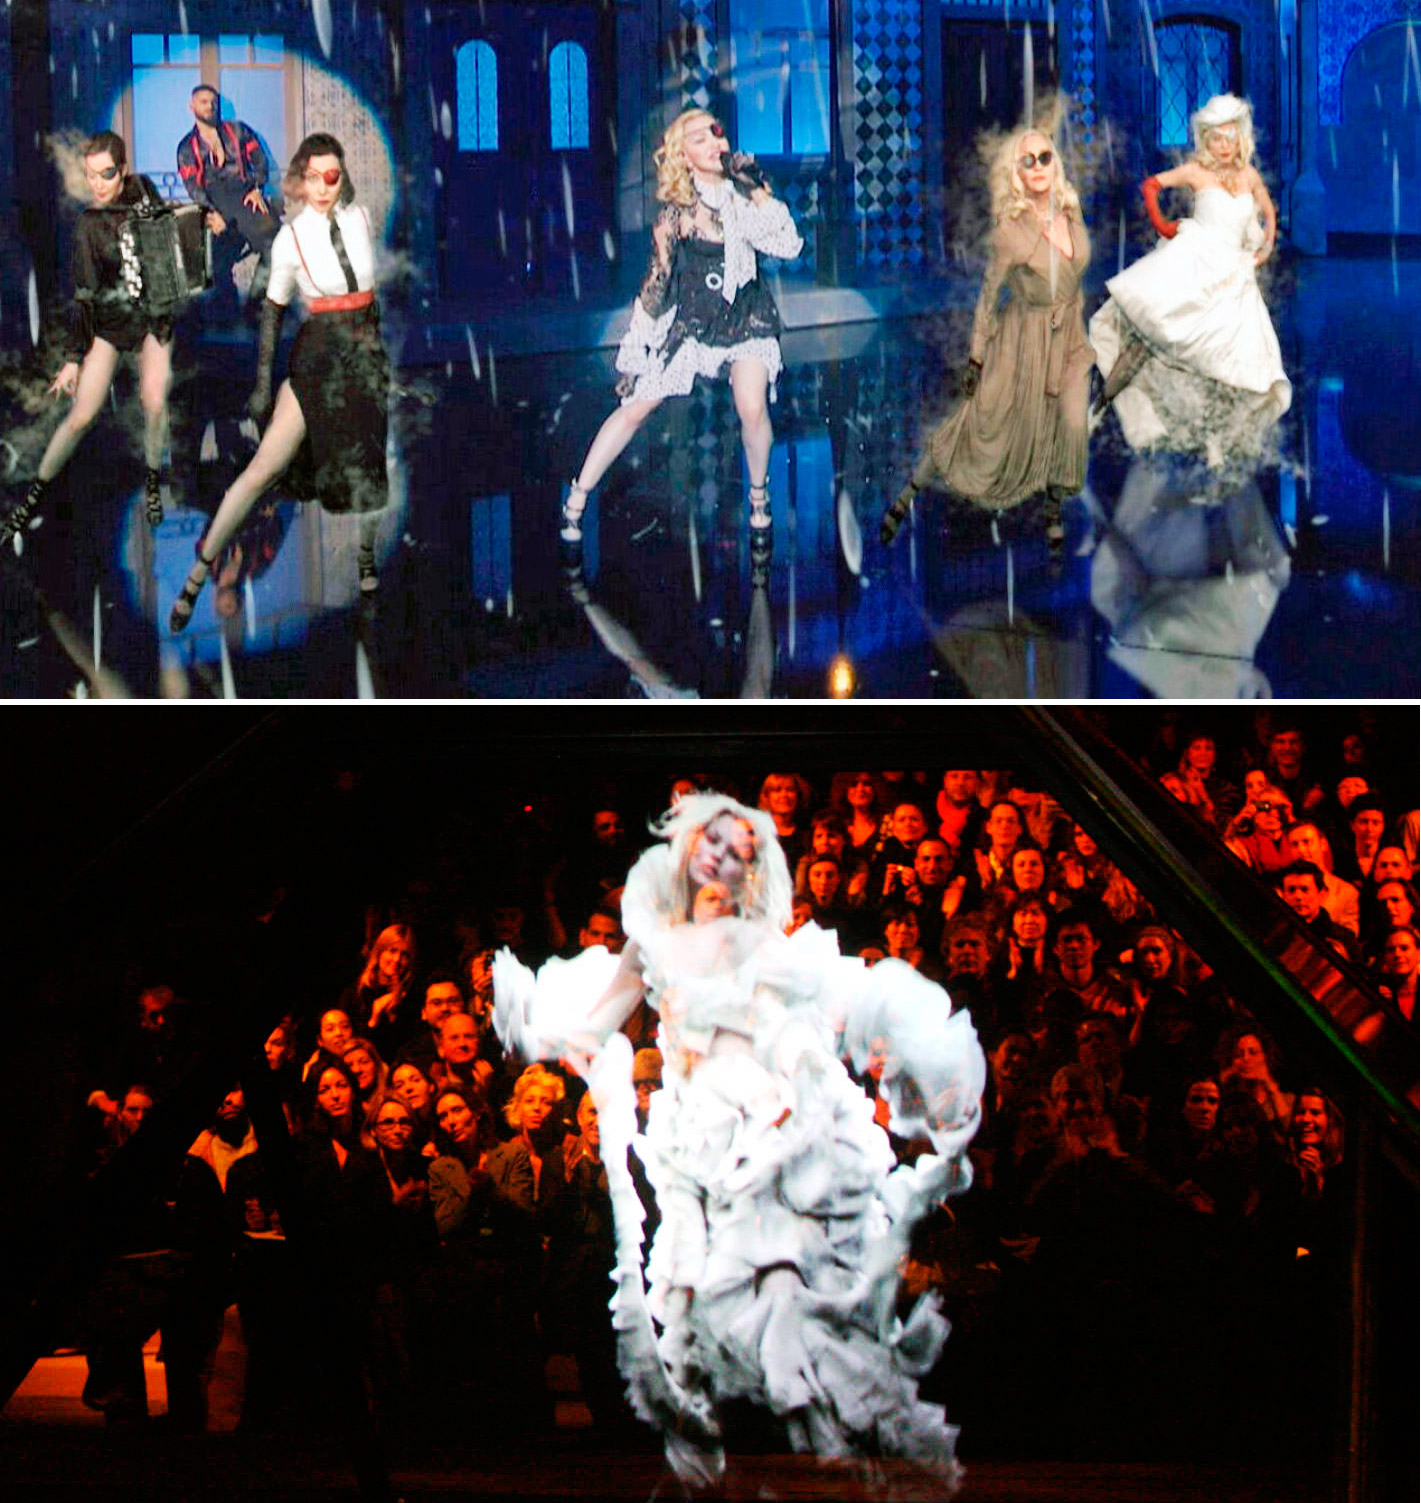 Above, Madonna, at the Billboard Music Awards ceremony, May 1, 2019, in Las Vega and below, Kate Moss, 3 March, 2006, in the final of The Widows of Culloden collection by Alexander McQueen, in Paris